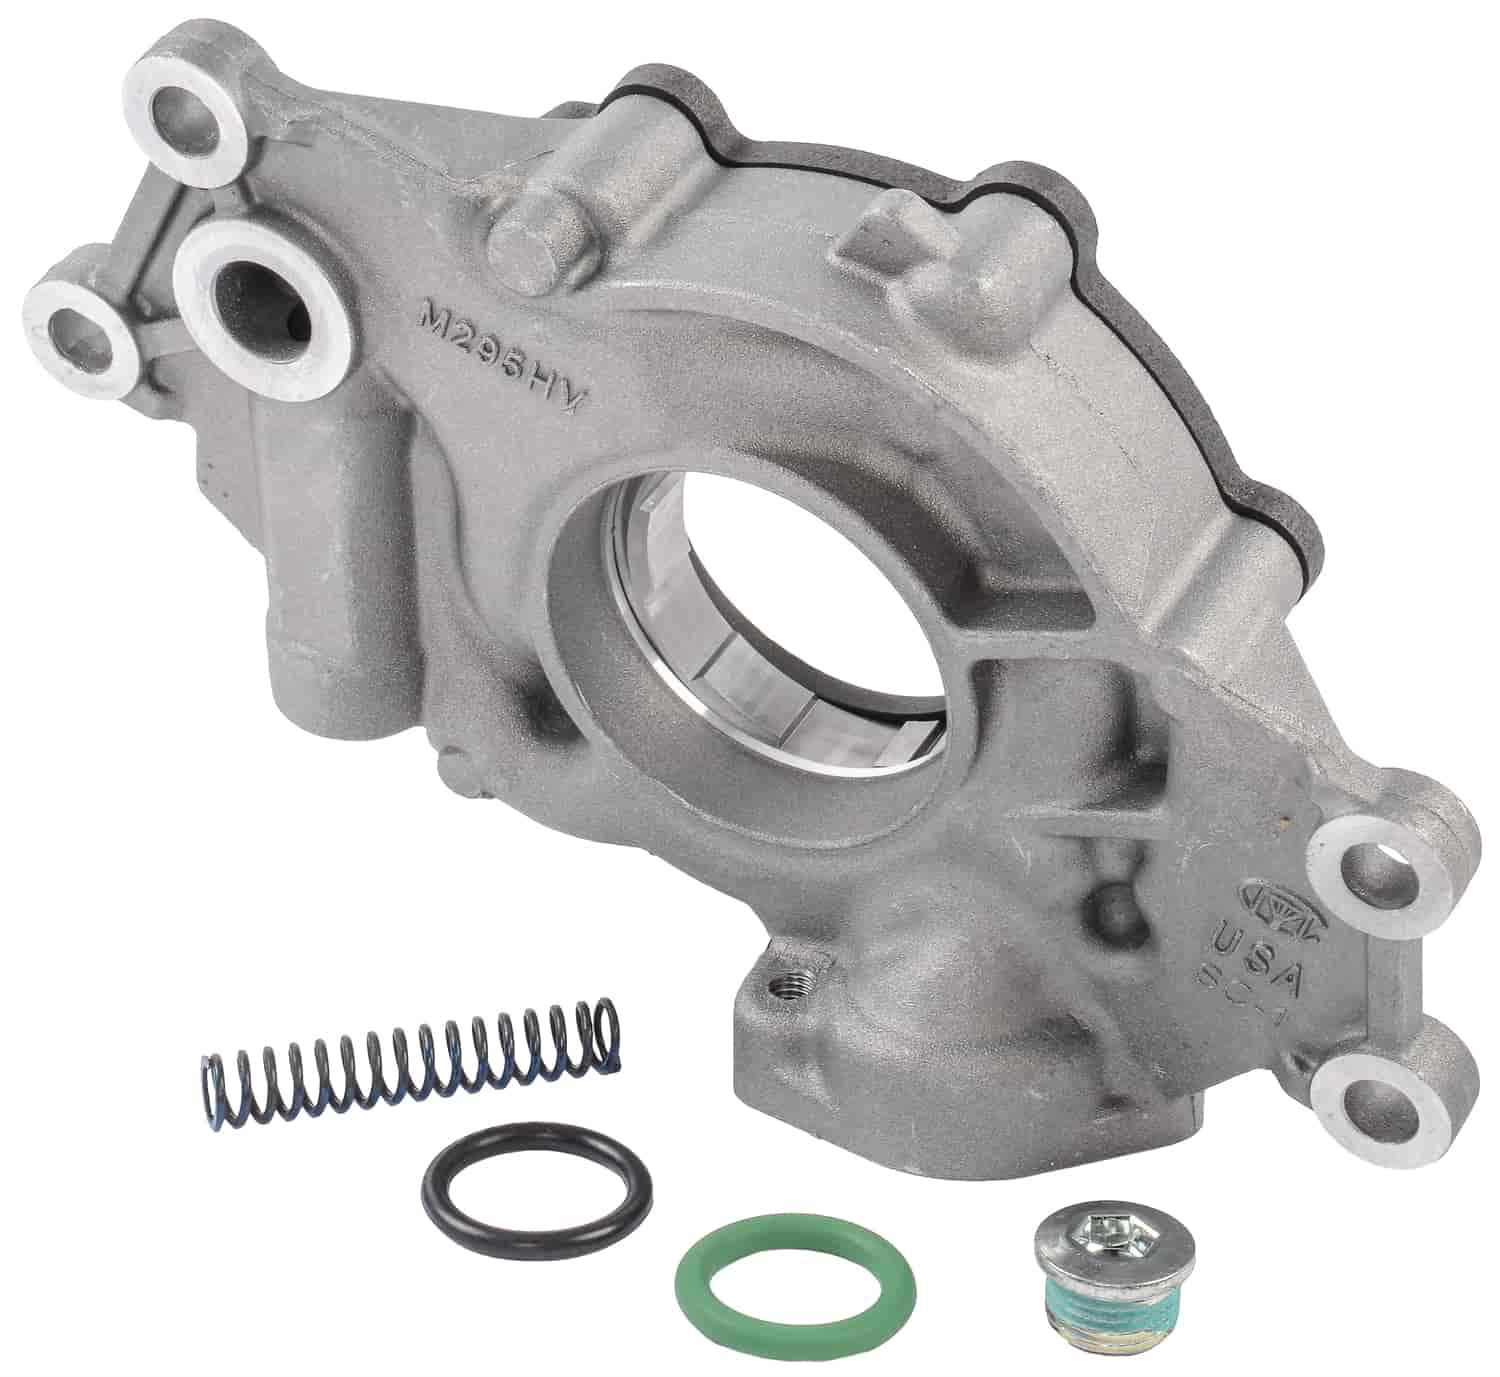 Oil Pump Mail: Melling M295HV: Stock Replacement Oil Pump High Volume